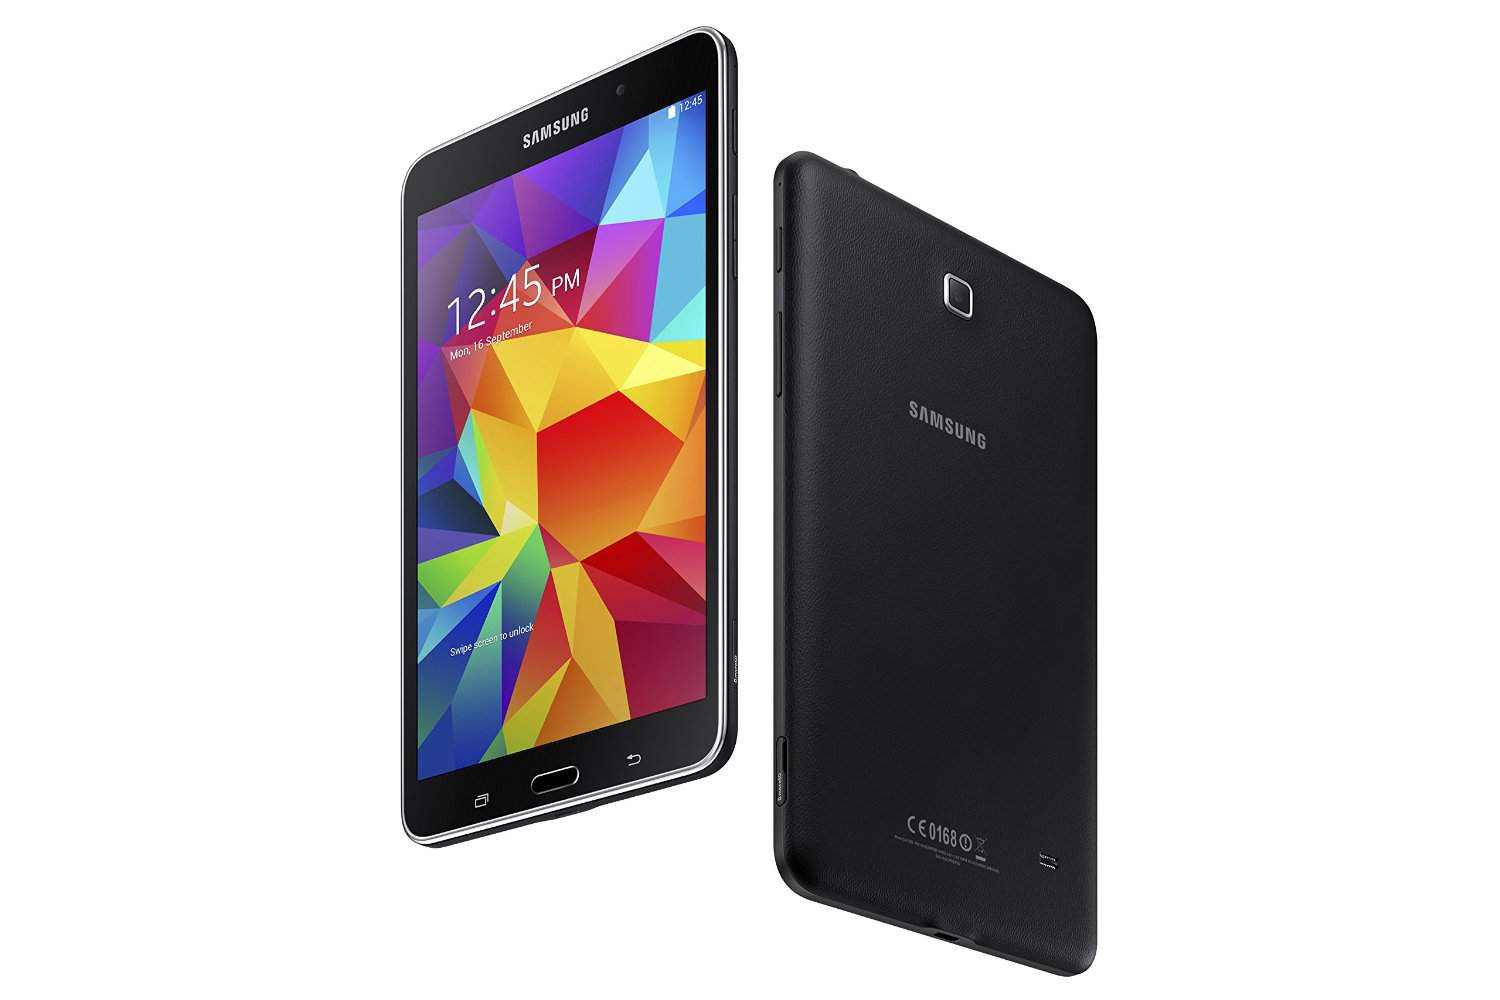 samsung galaxy tab 4 hottest amazon black friday deals 2015